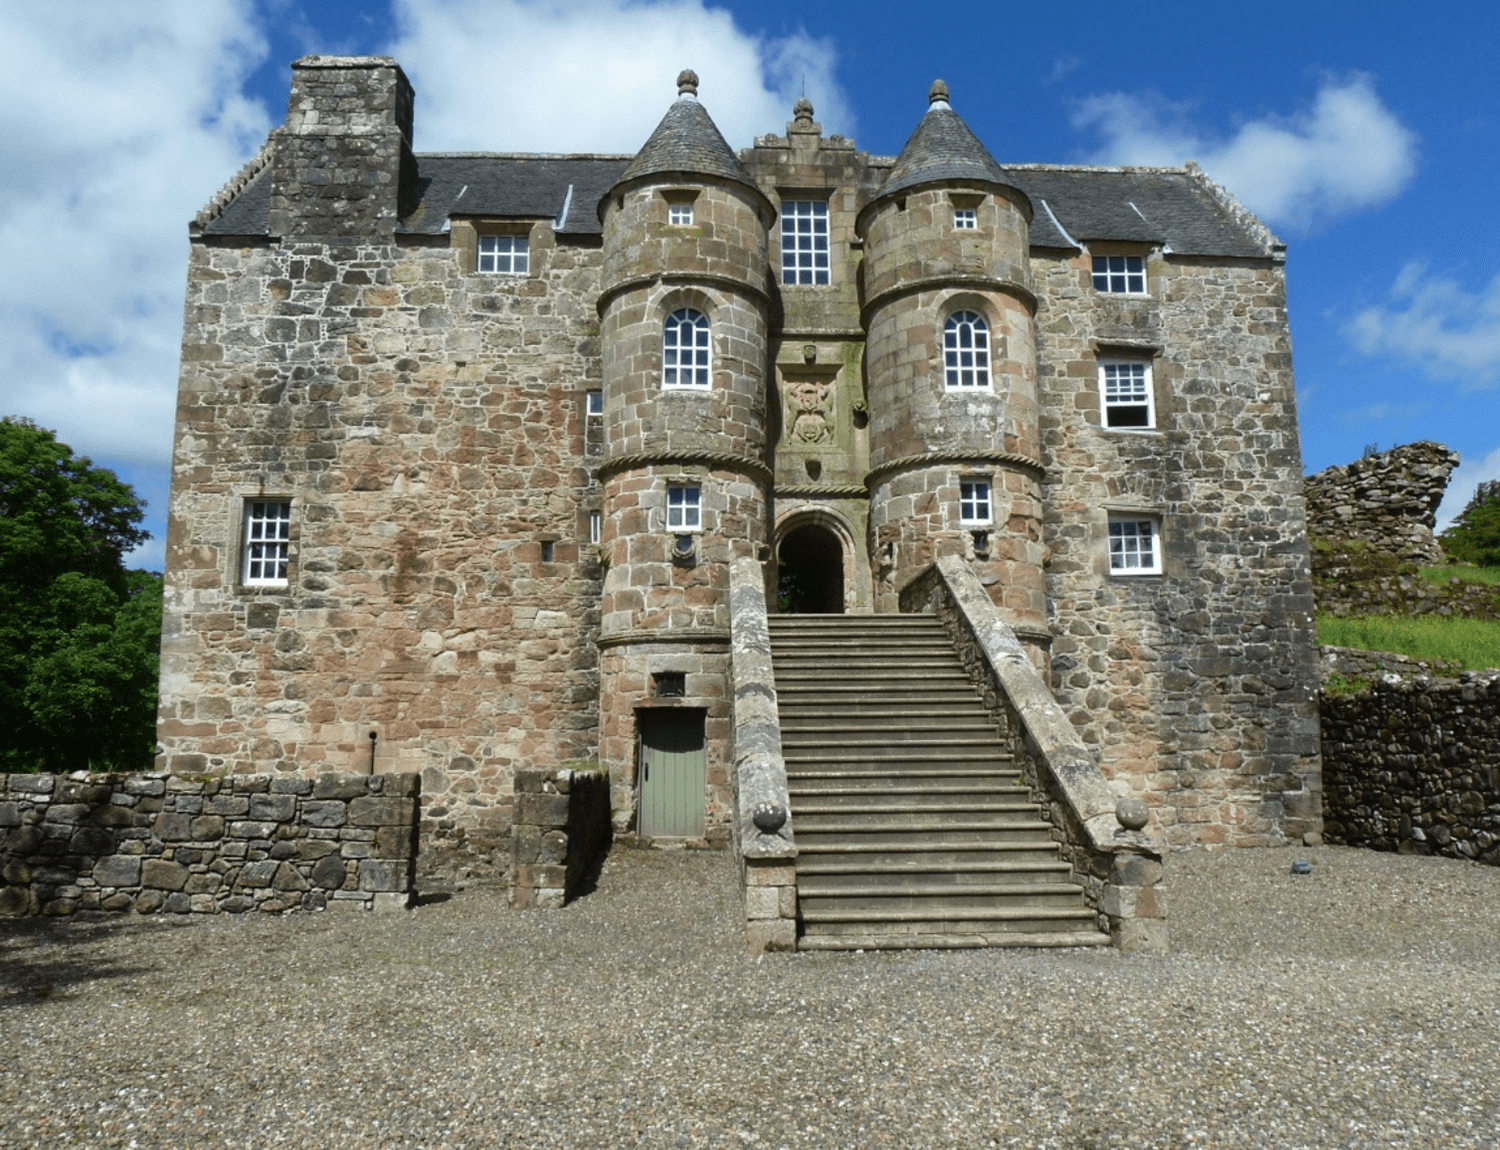 Funds for the Renovation of a 16th Century Castle